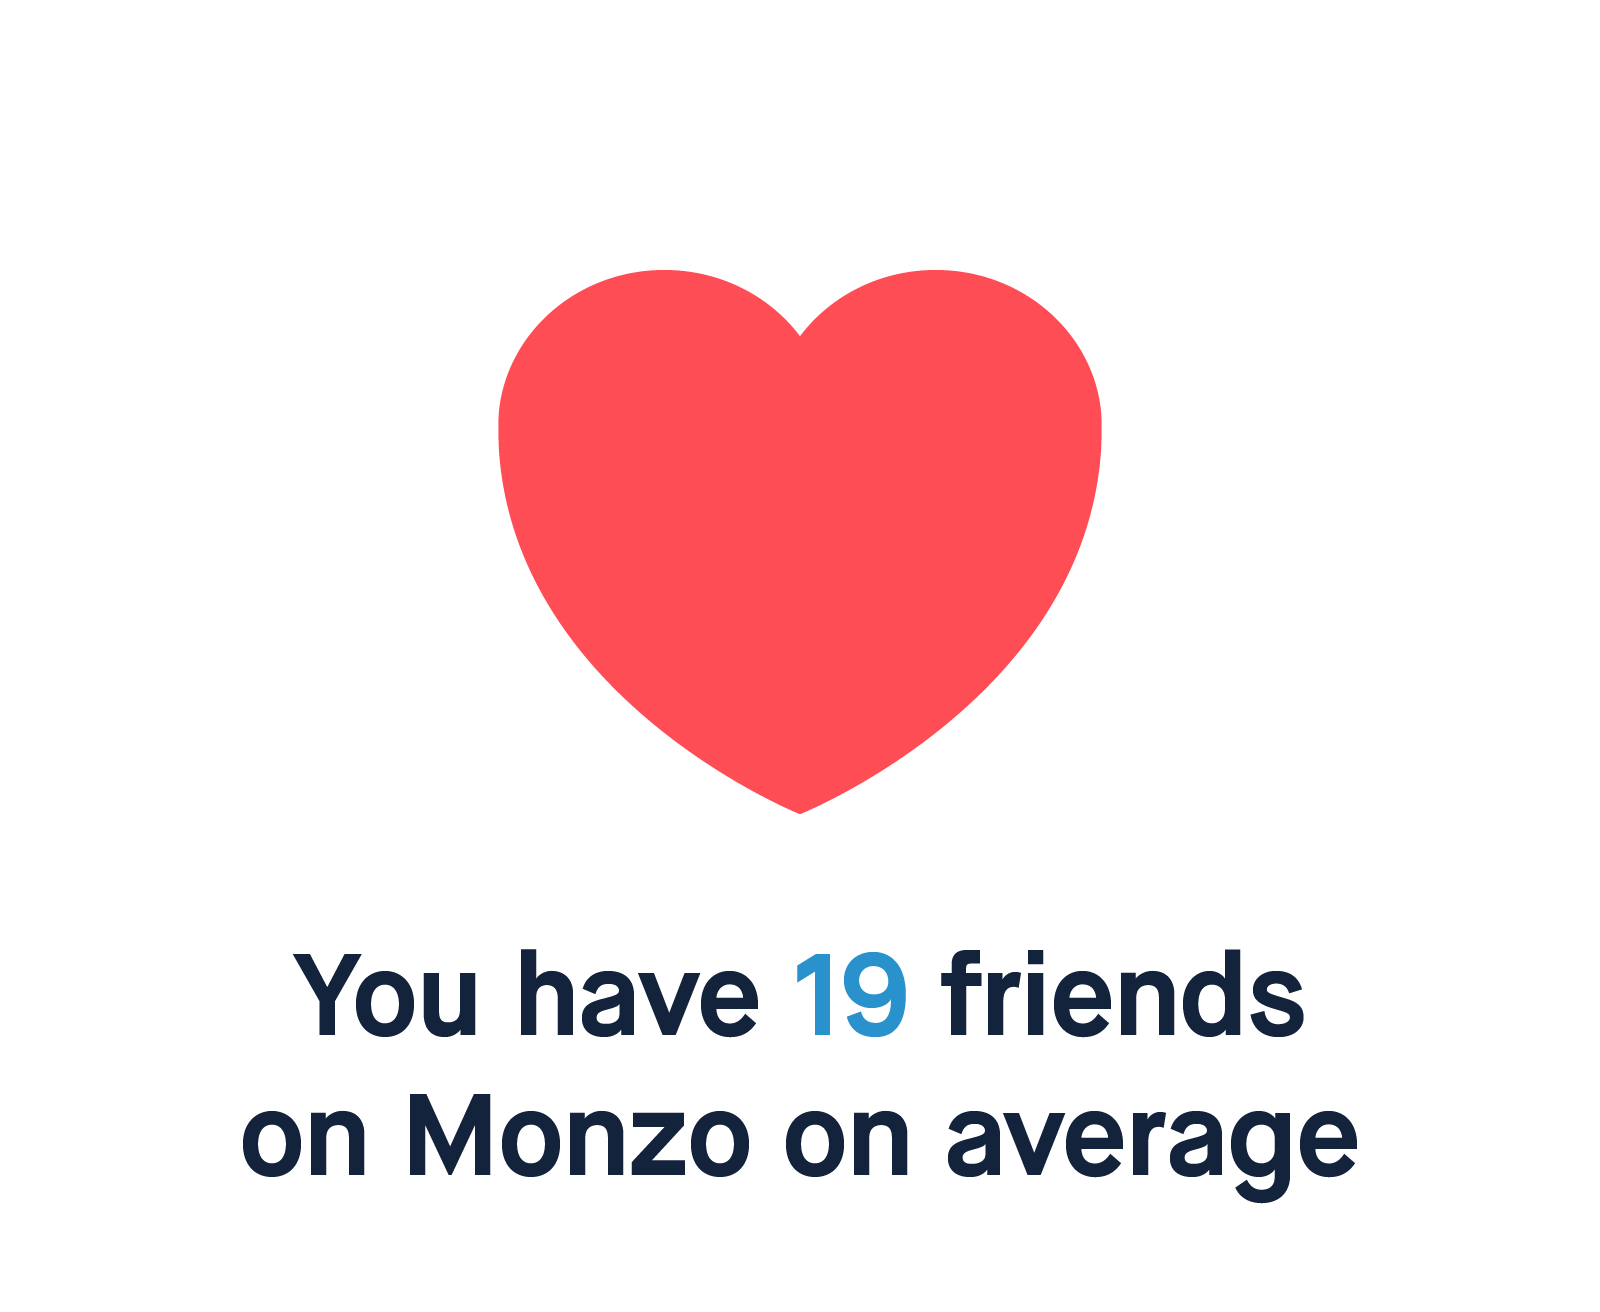 You have 19 friends on Monzo on average